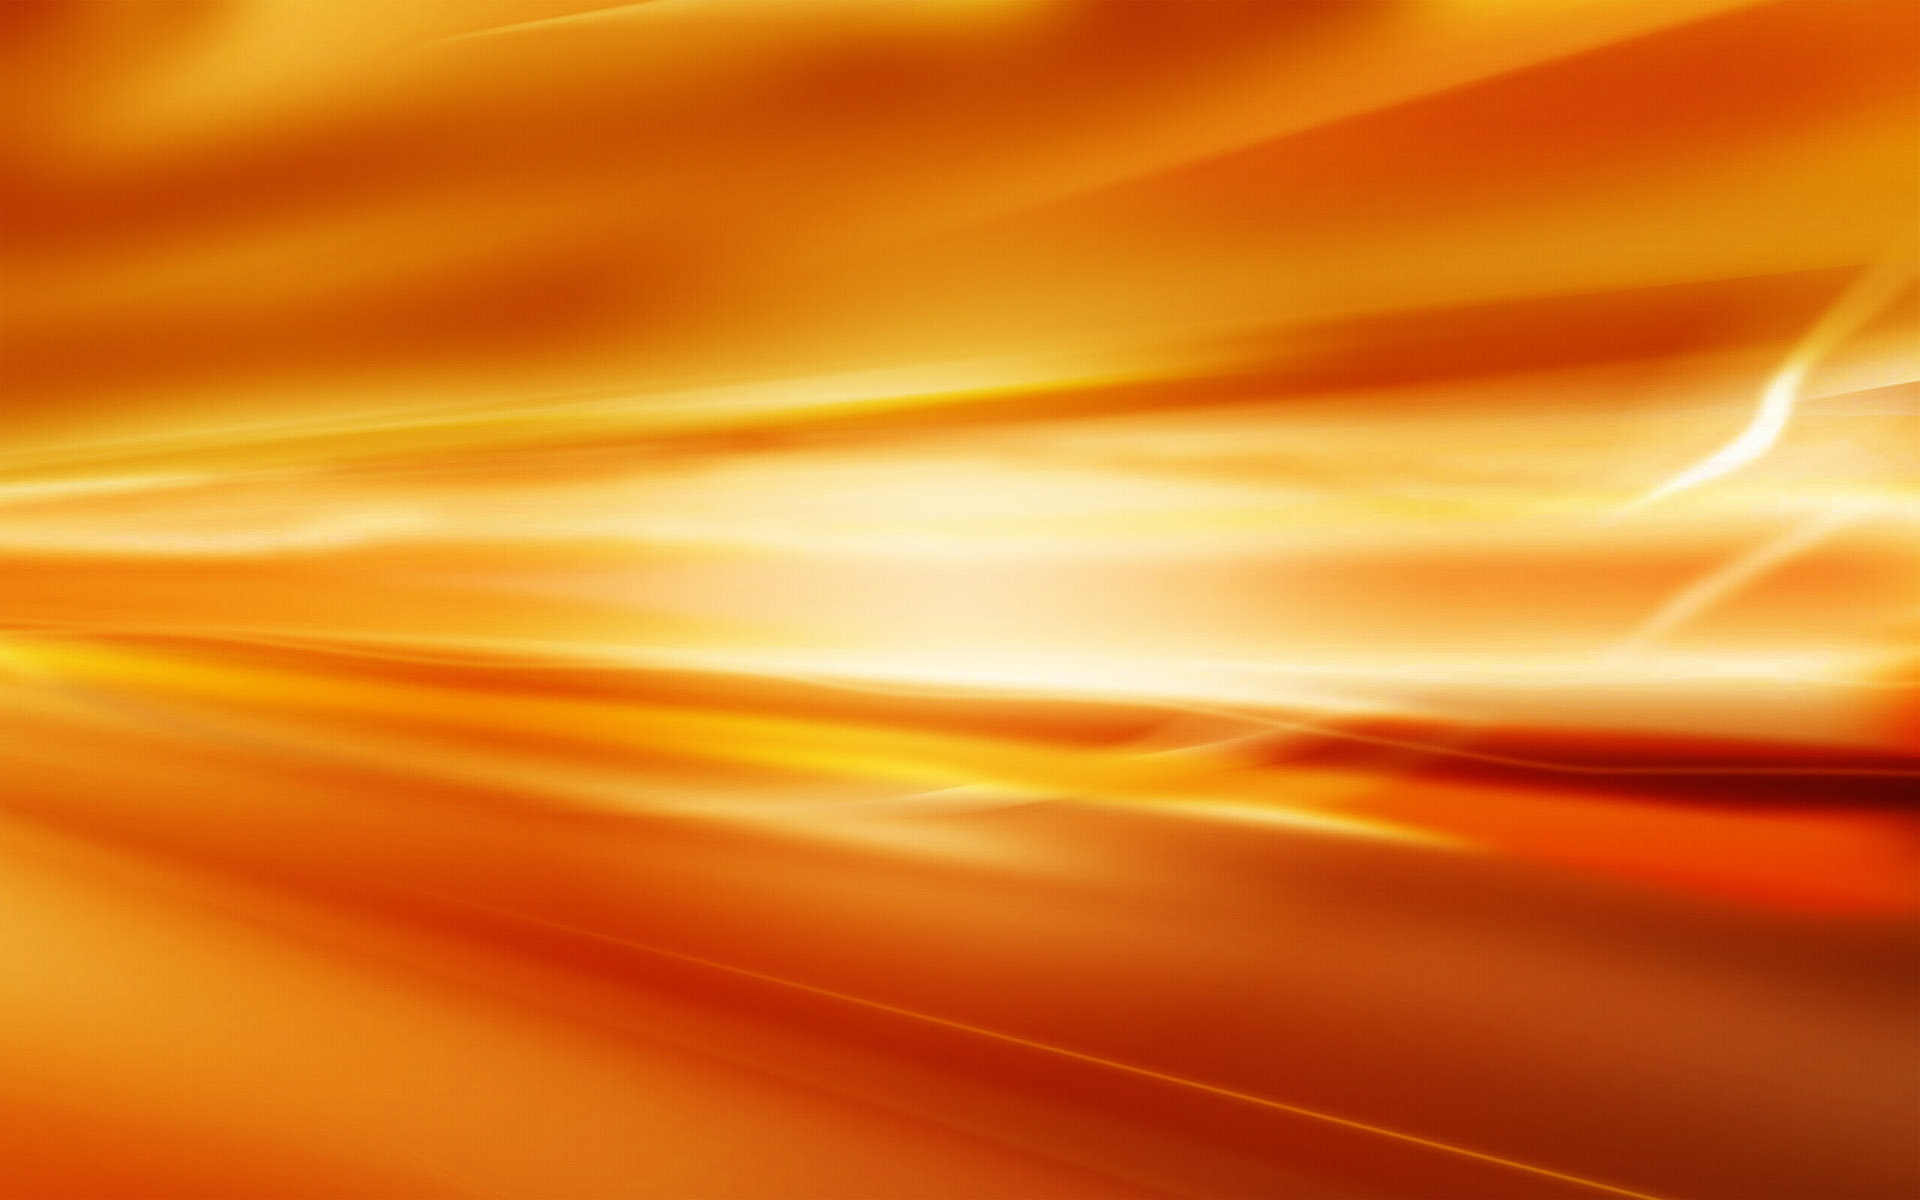 Orange Abstract Background wallpaper | 1920x1200 | #10818